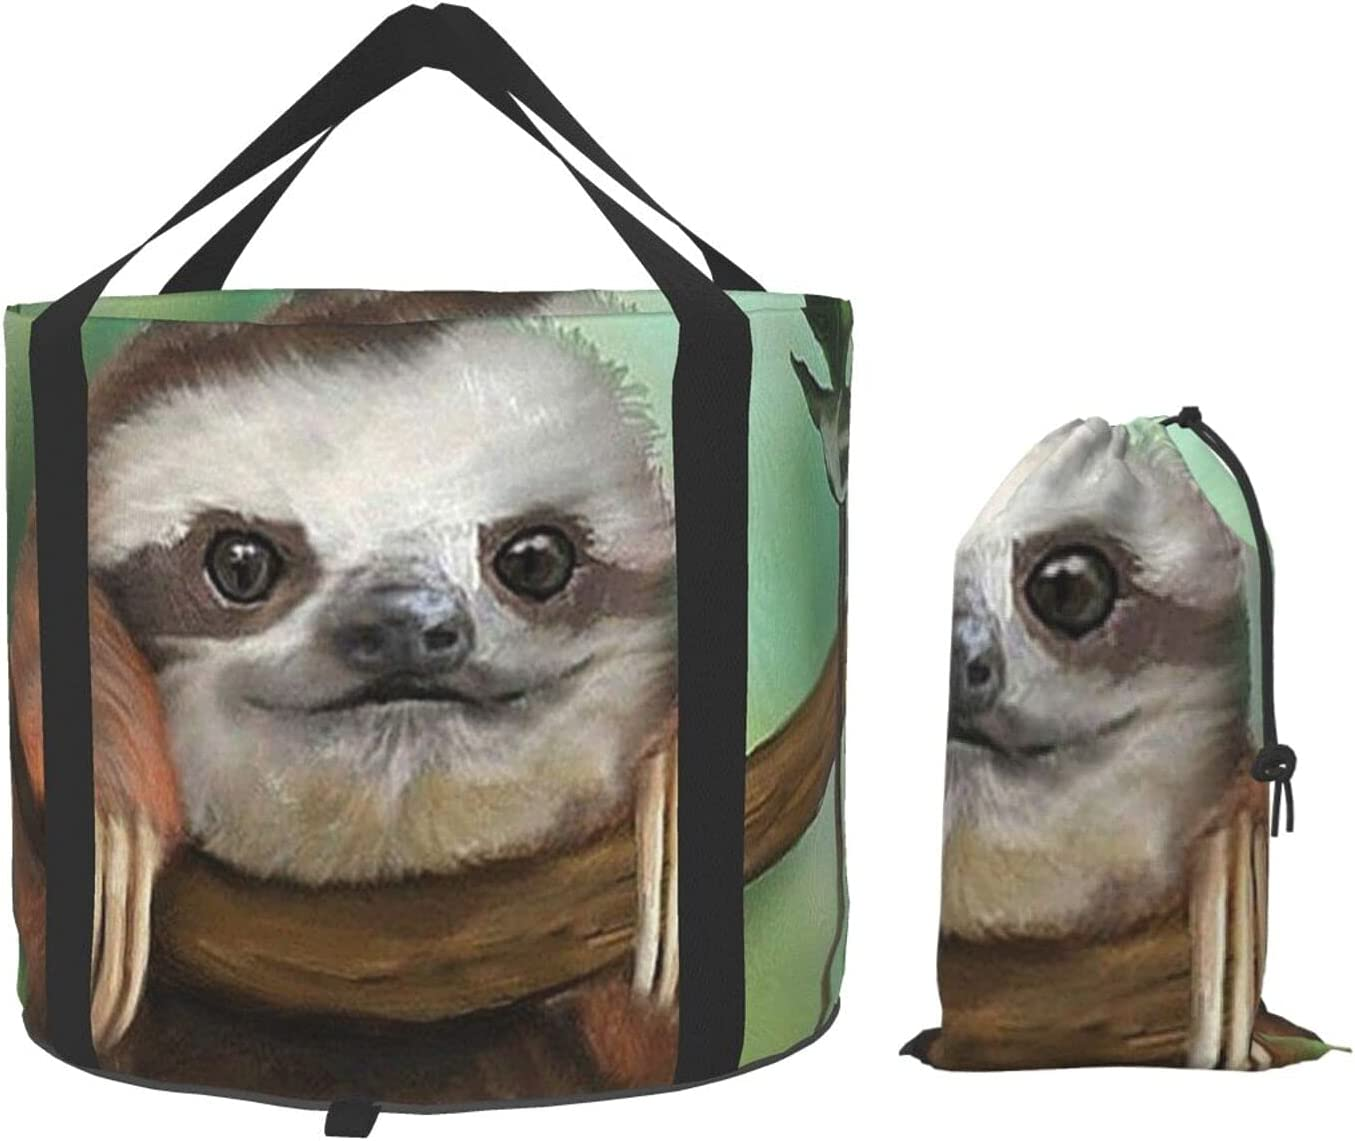 VVEGACE Fixed price for sale Sloth Cute Animal Bucket Po Multifunctional Collapsible Ranking TOP8